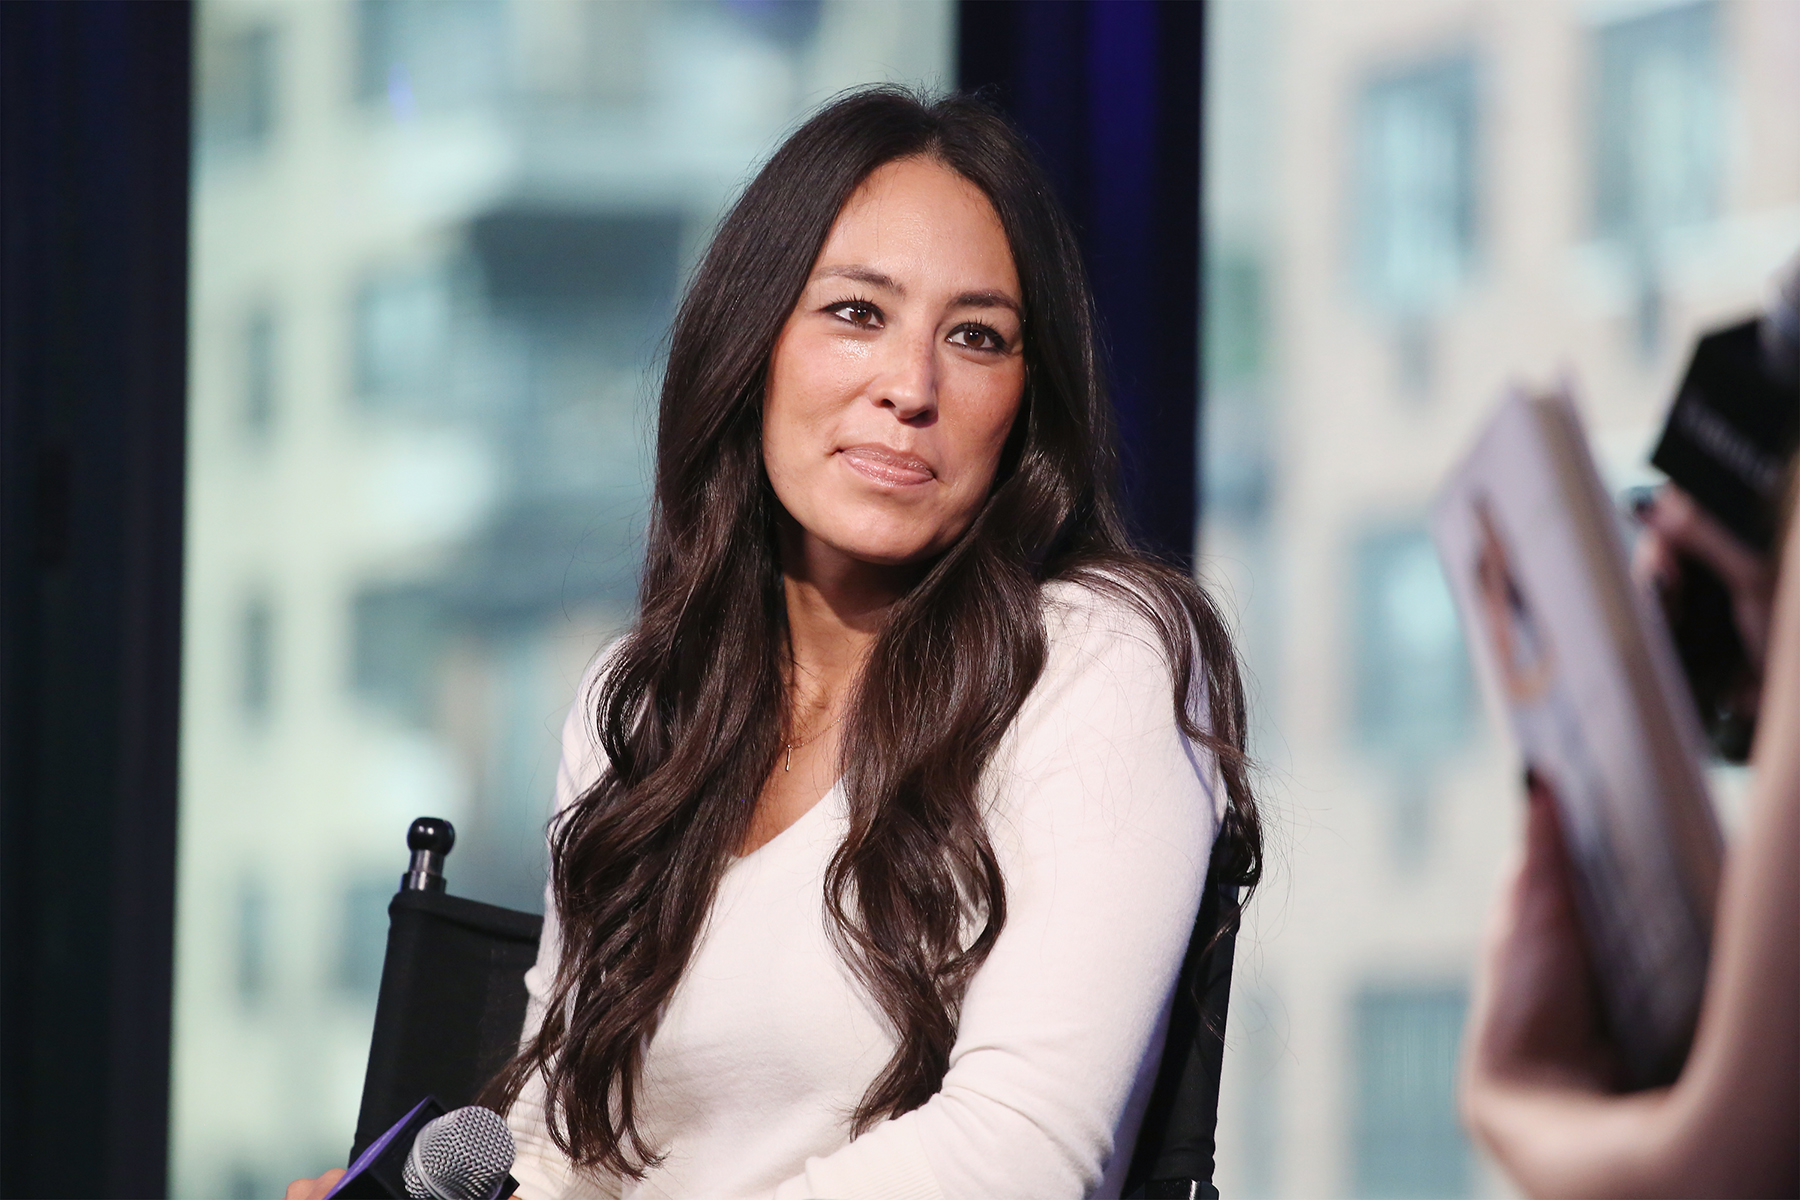 Joanna Gaines Admits She Was Teased for Being Asian in School: 'I Masked My Insecurity'